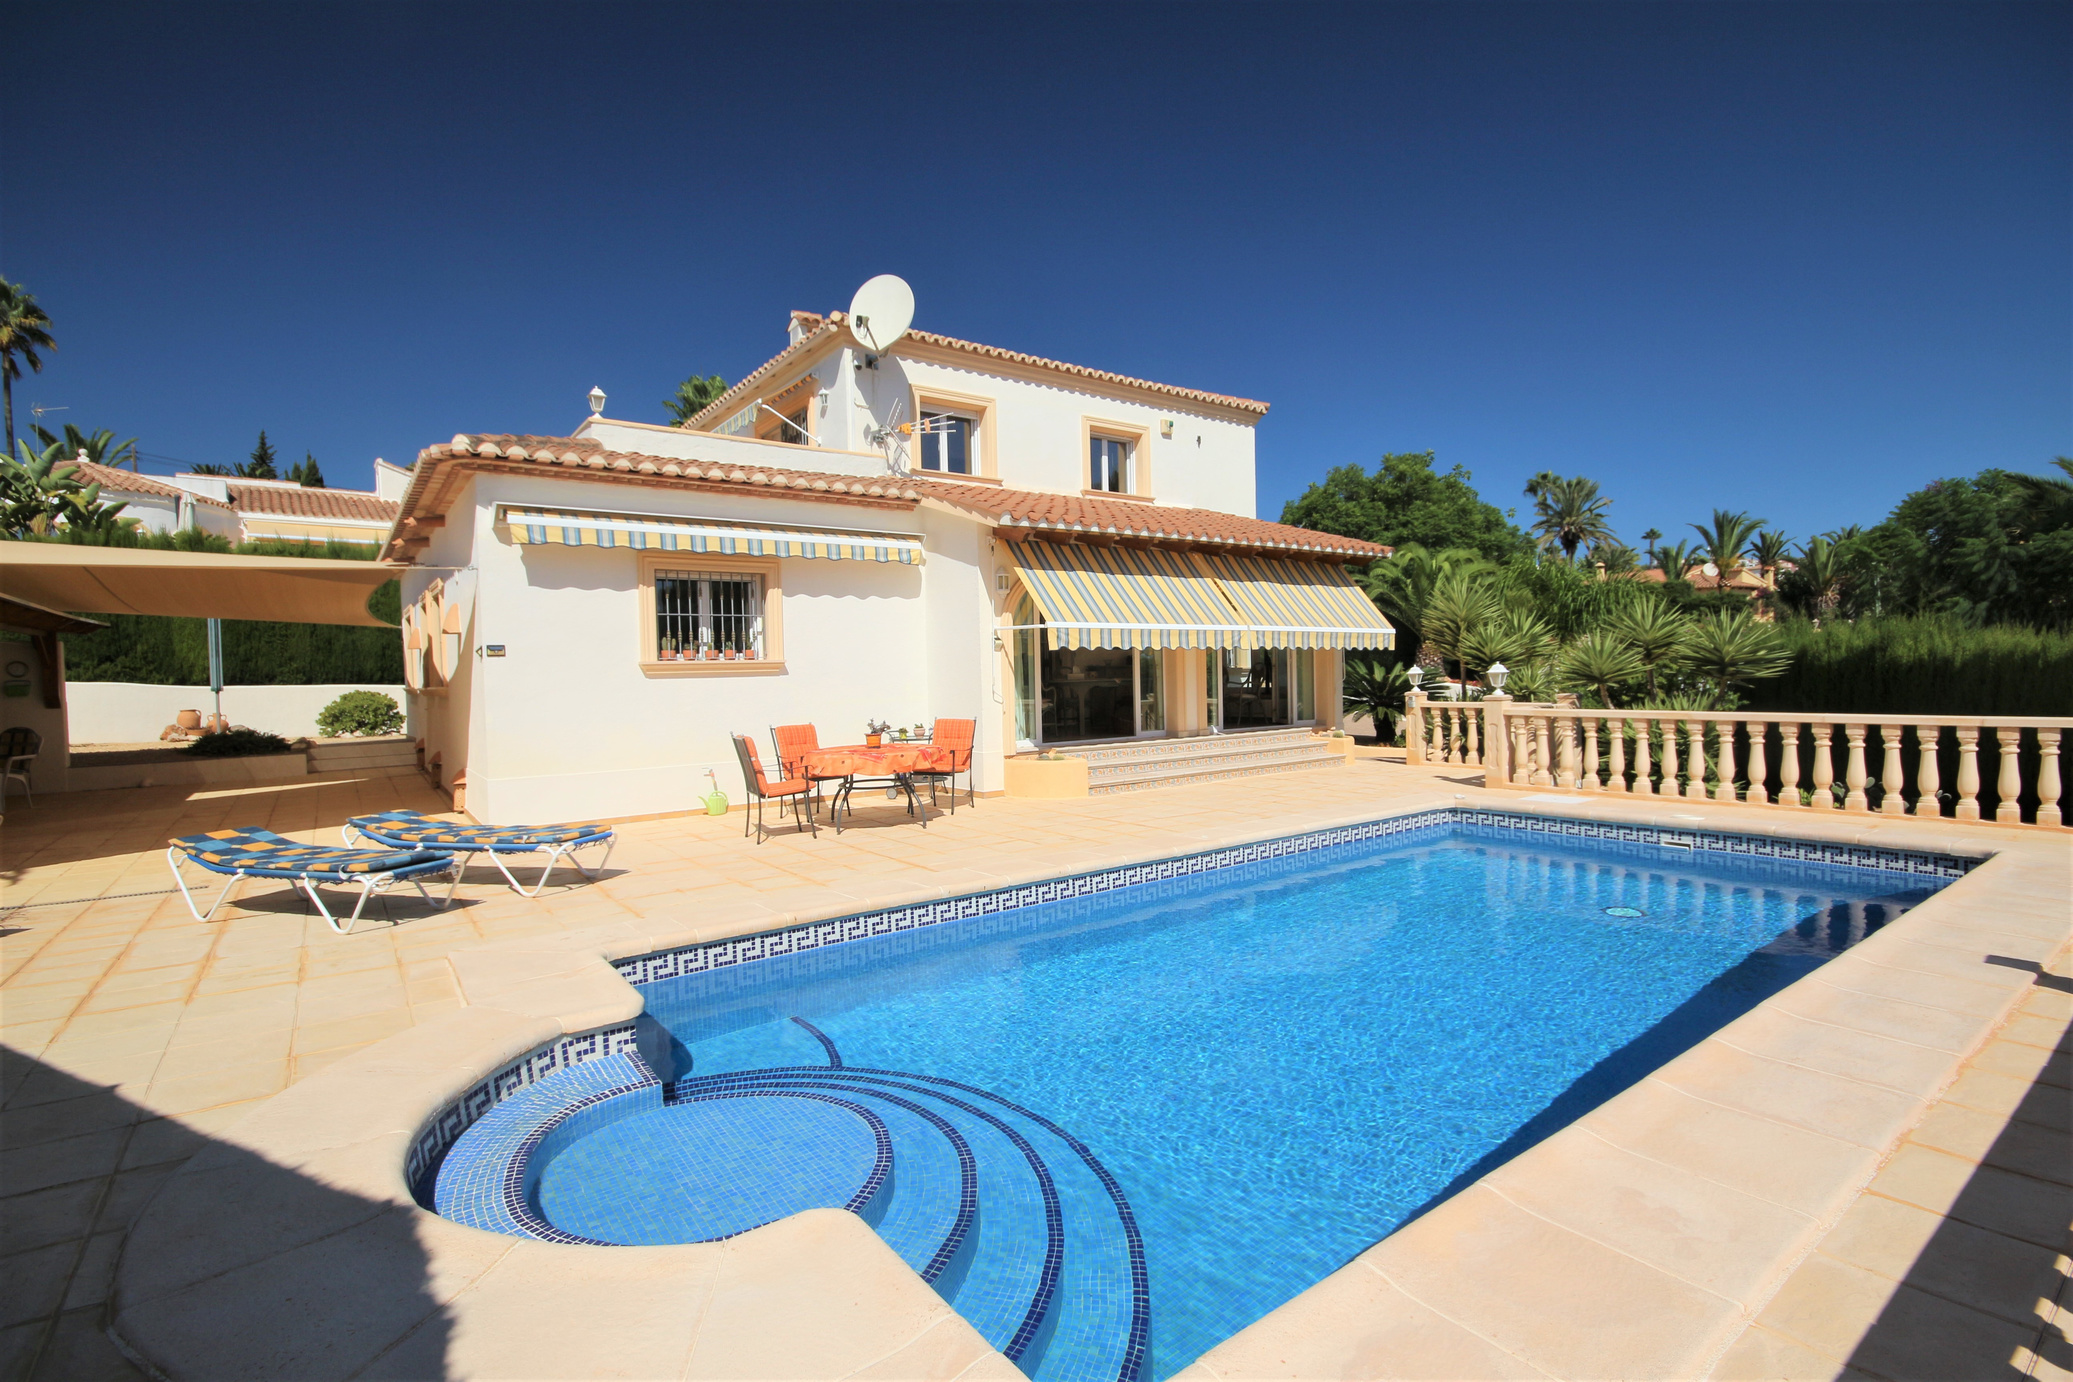 Immaculate three bedroom, two bathroom villa in Calpe